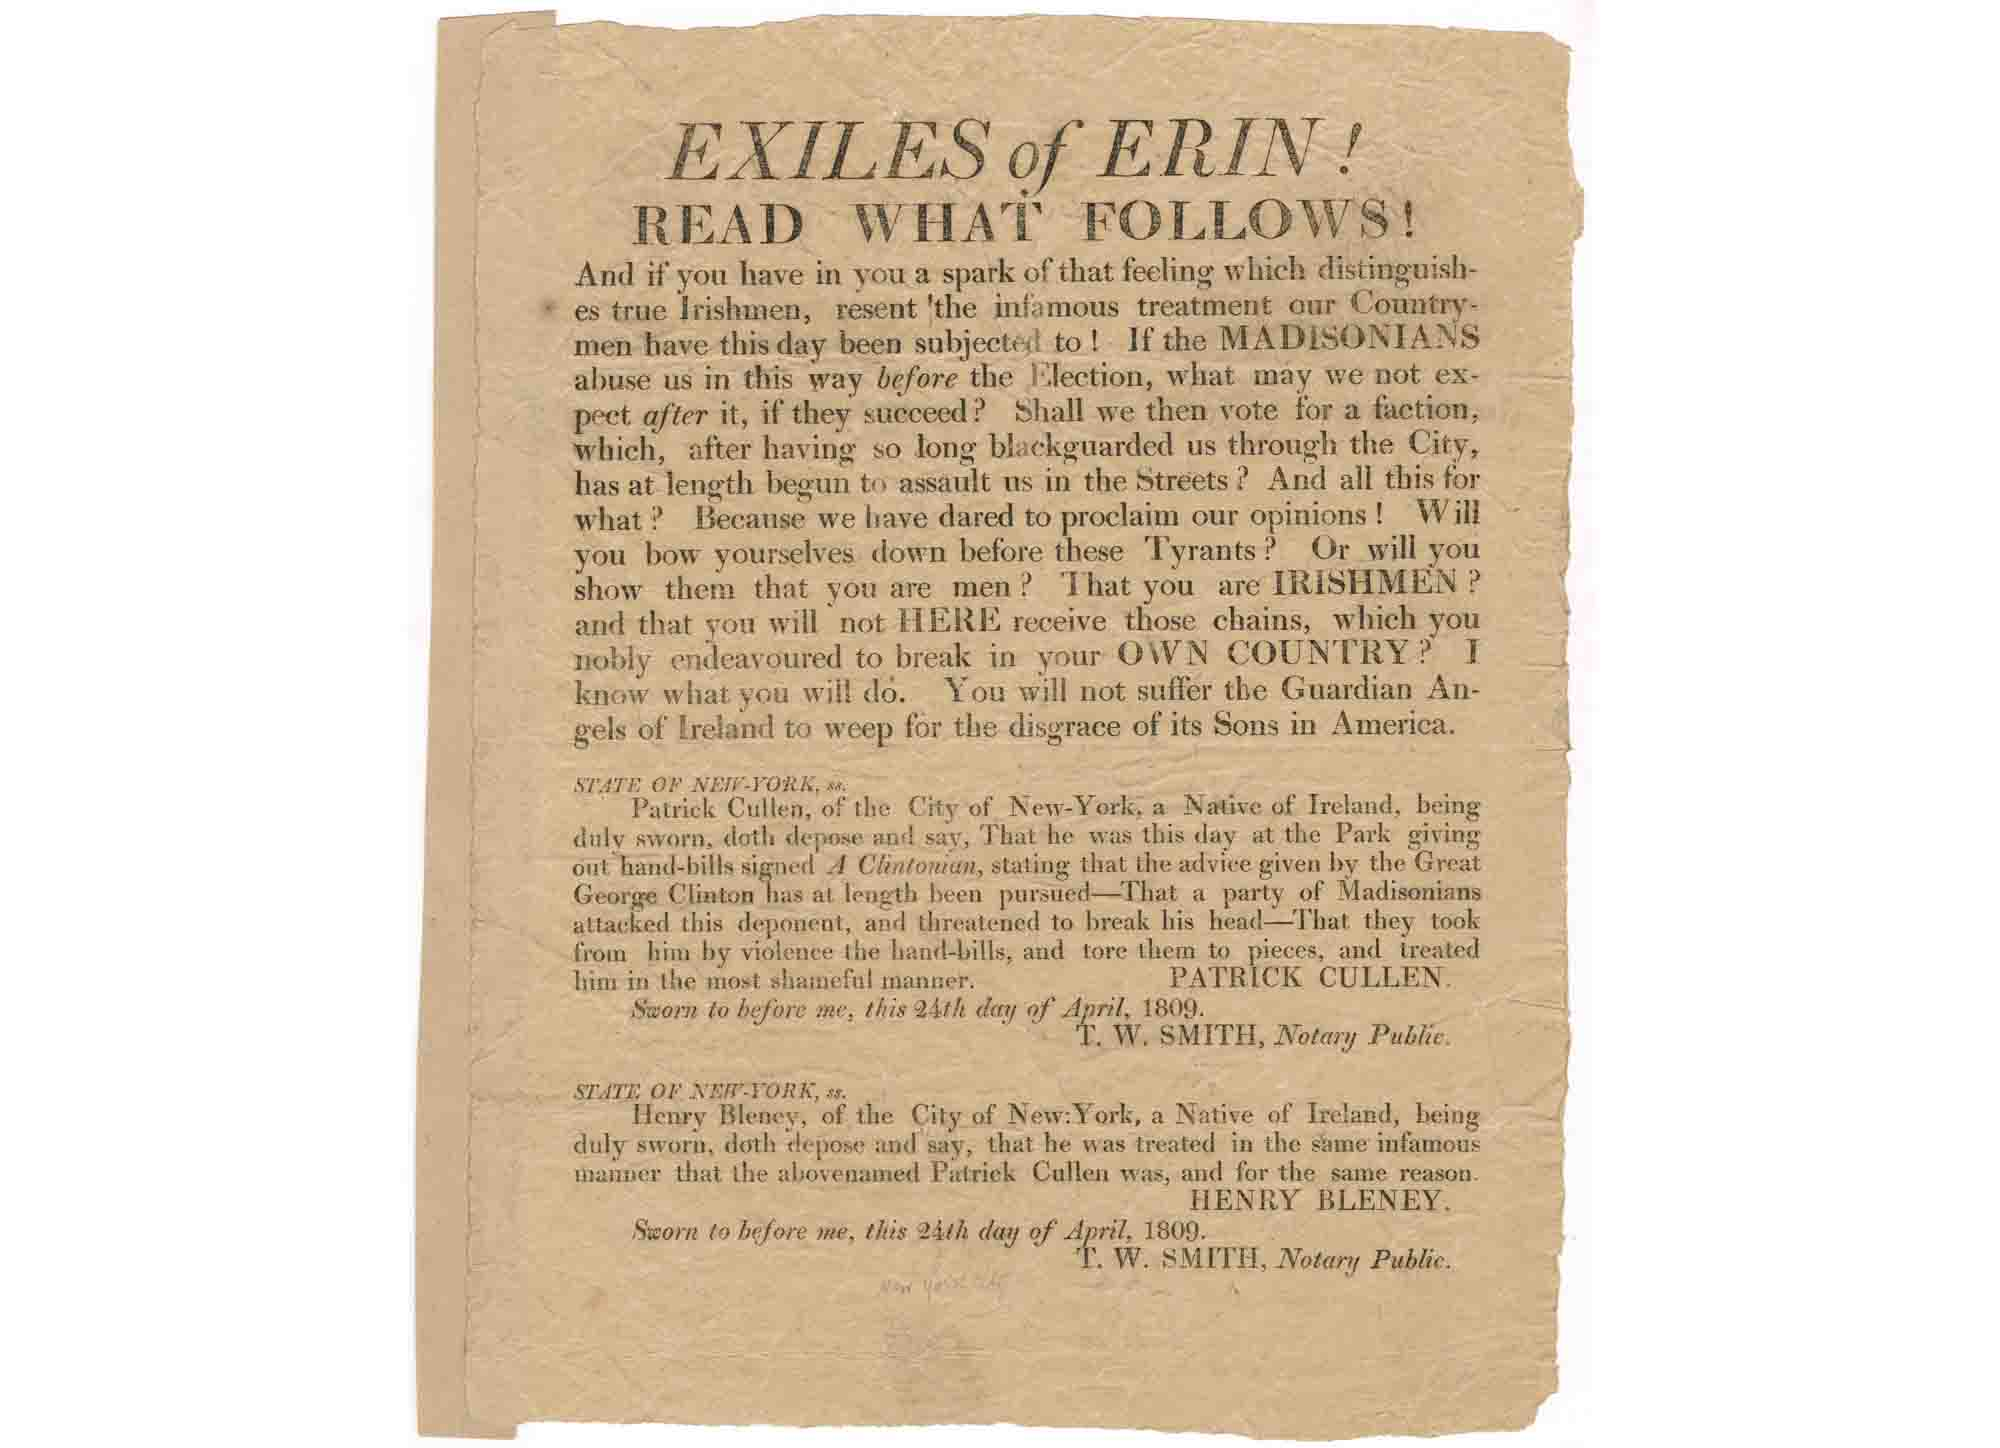 """Exiles of Erin"" broadside on display at Gracie Mansion."